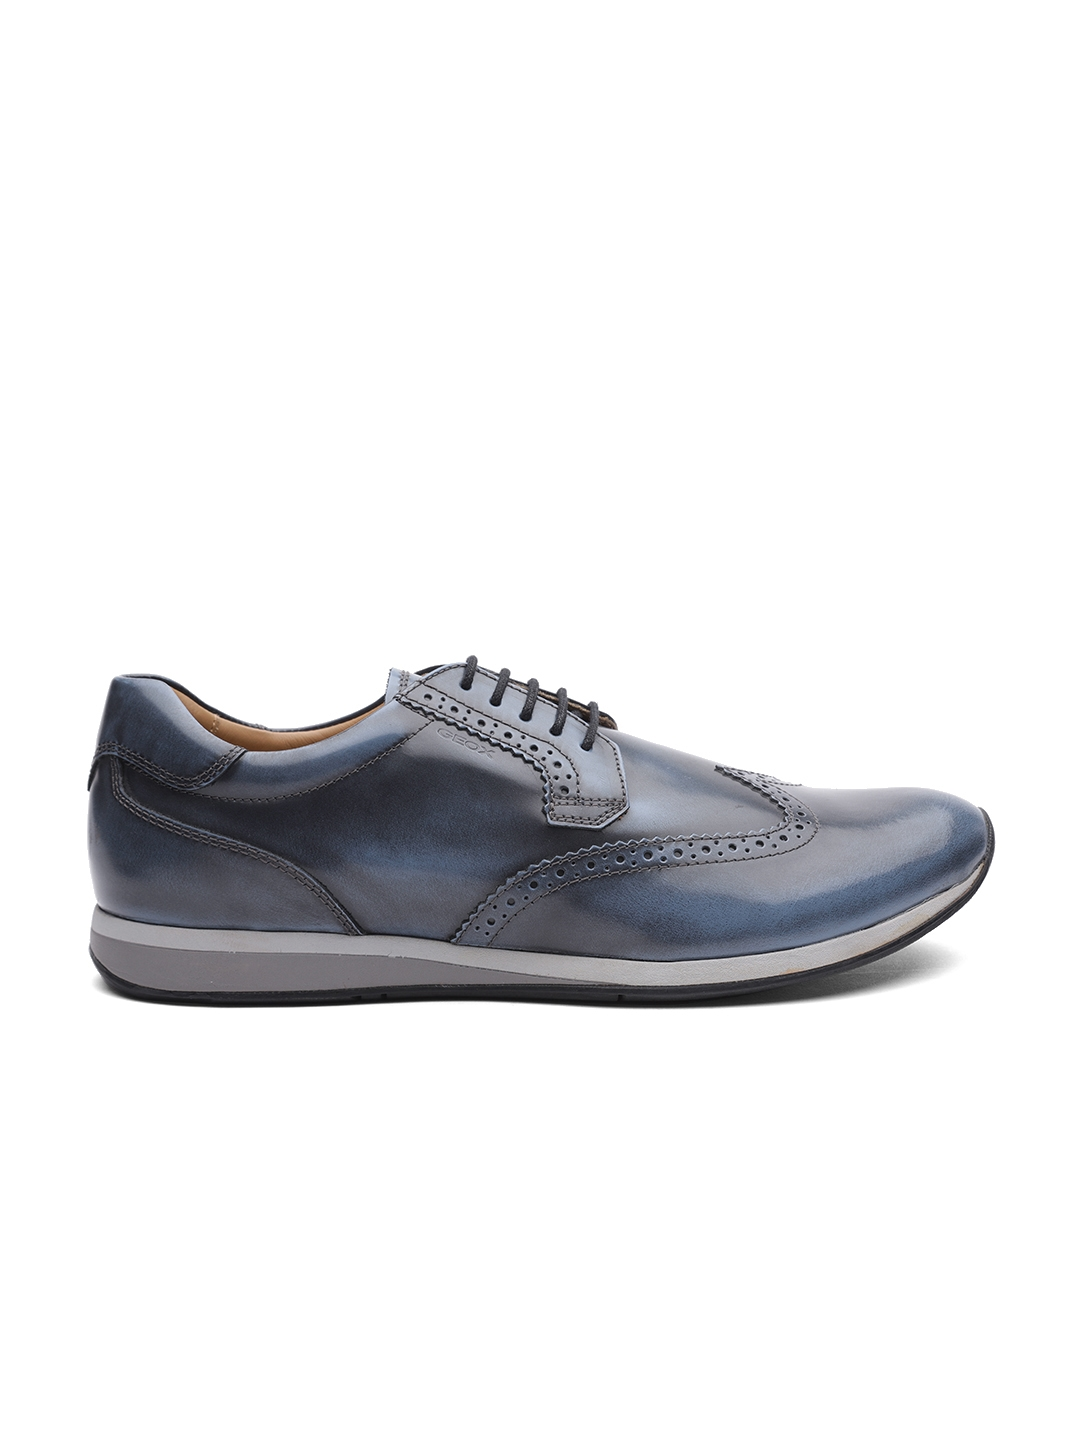 61d0ab8cd7 Buy Geox Men Blue Leather Textured Sneakers - Casual Shoes for Men ...